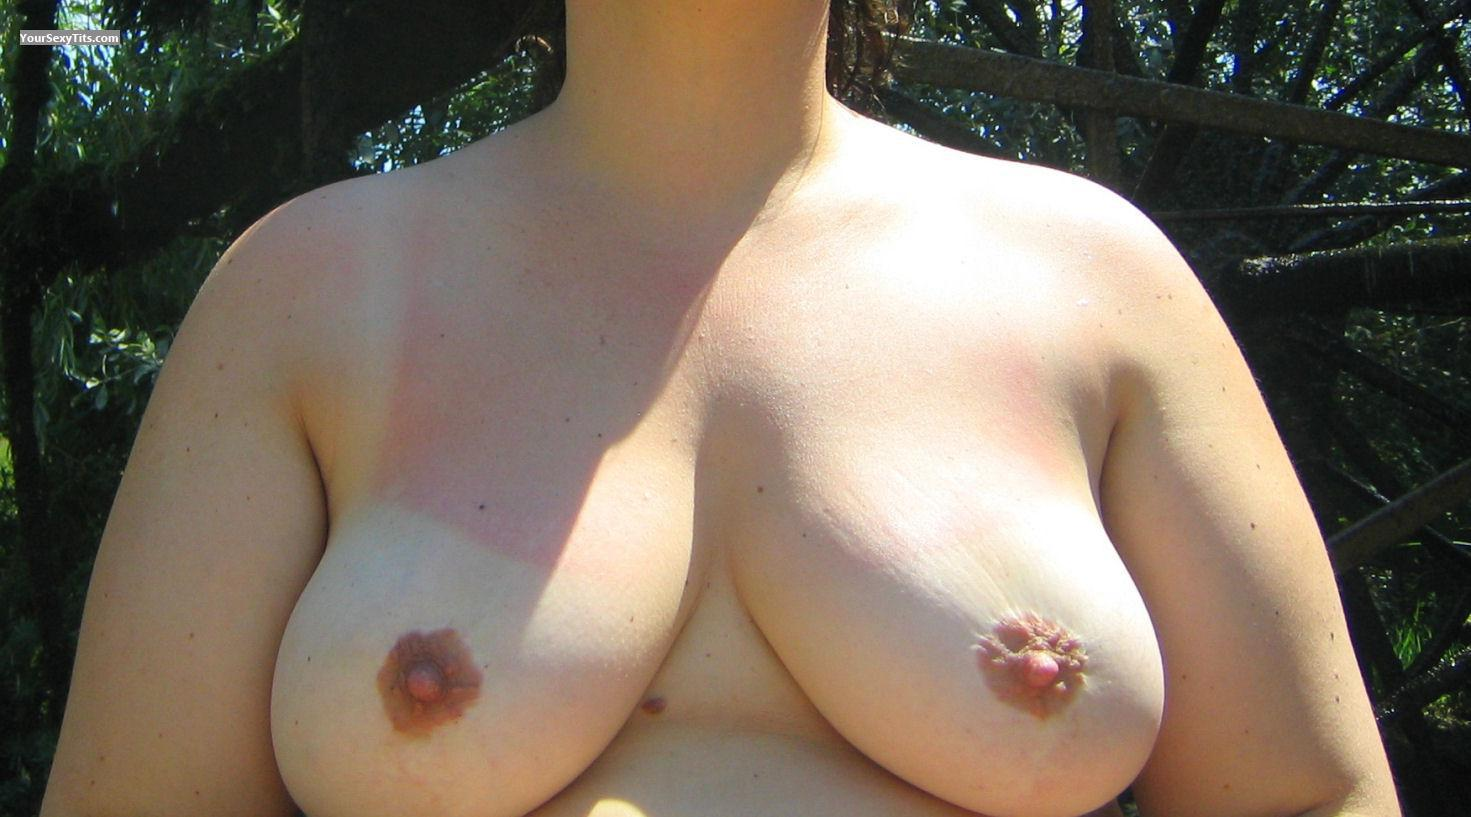 Tit Flash: Big Tits - Juliette from France